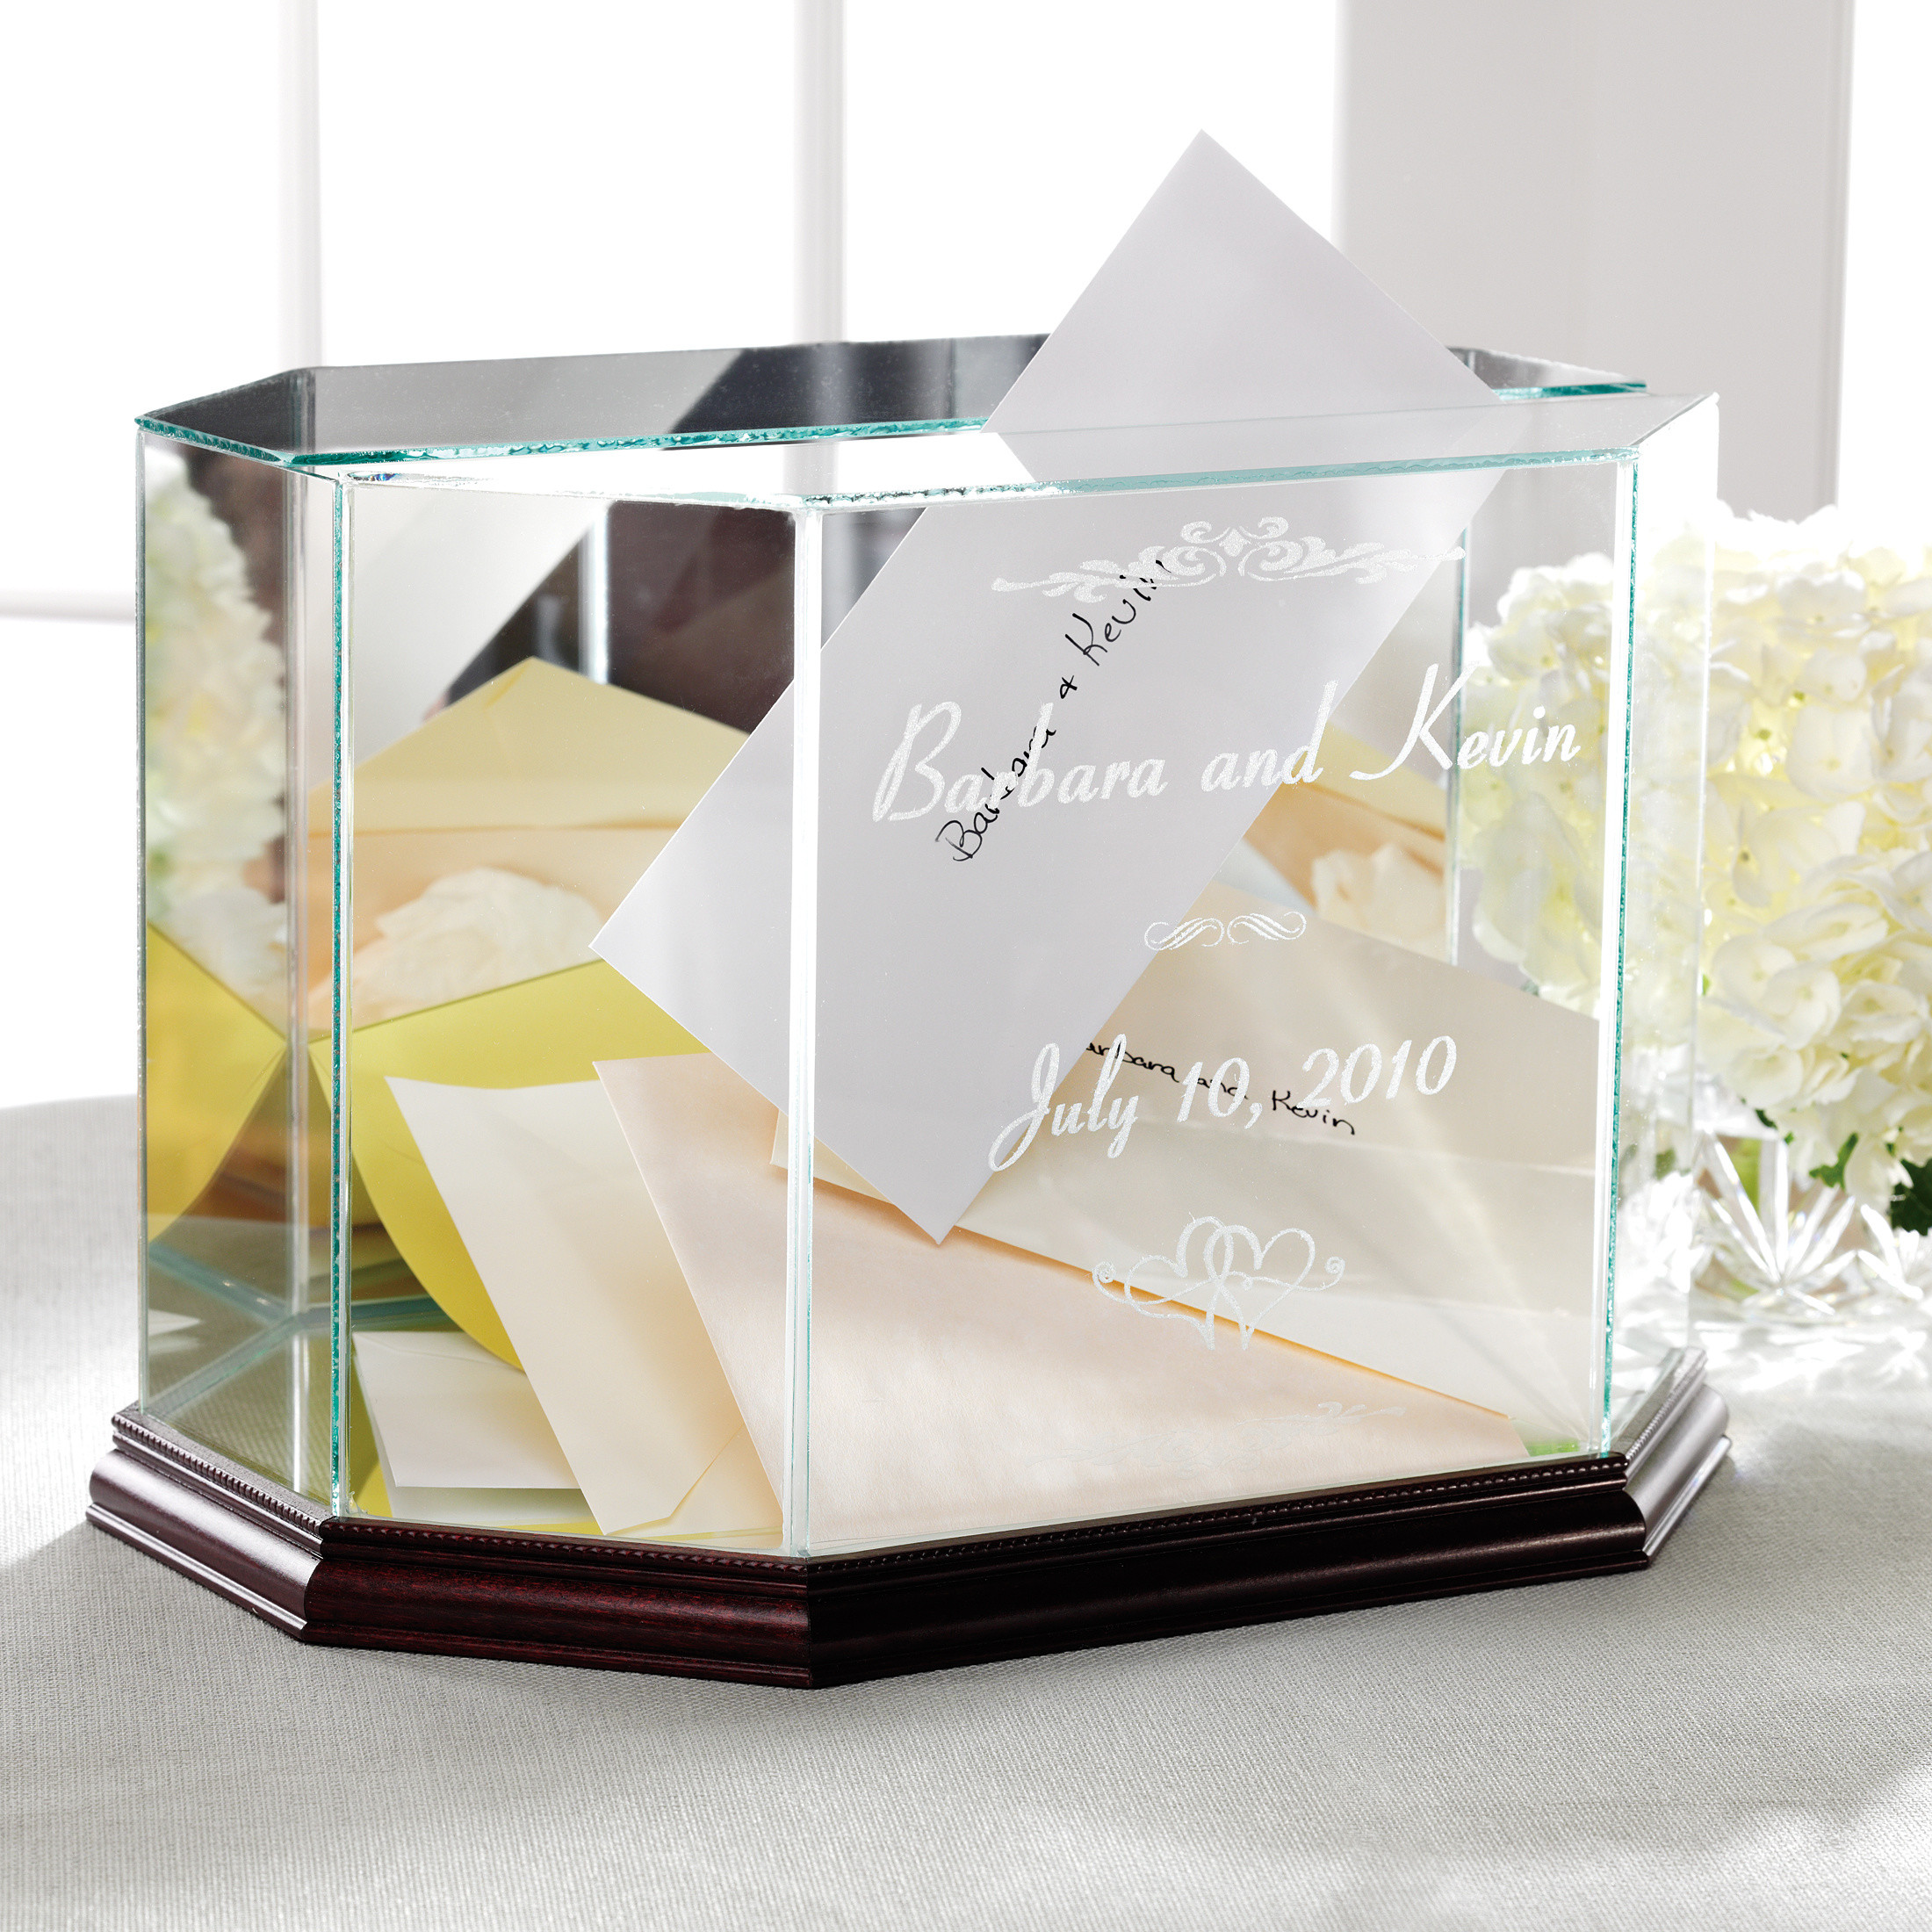 Personalized Glass Wedding Box Keepsake for Money Envelopes